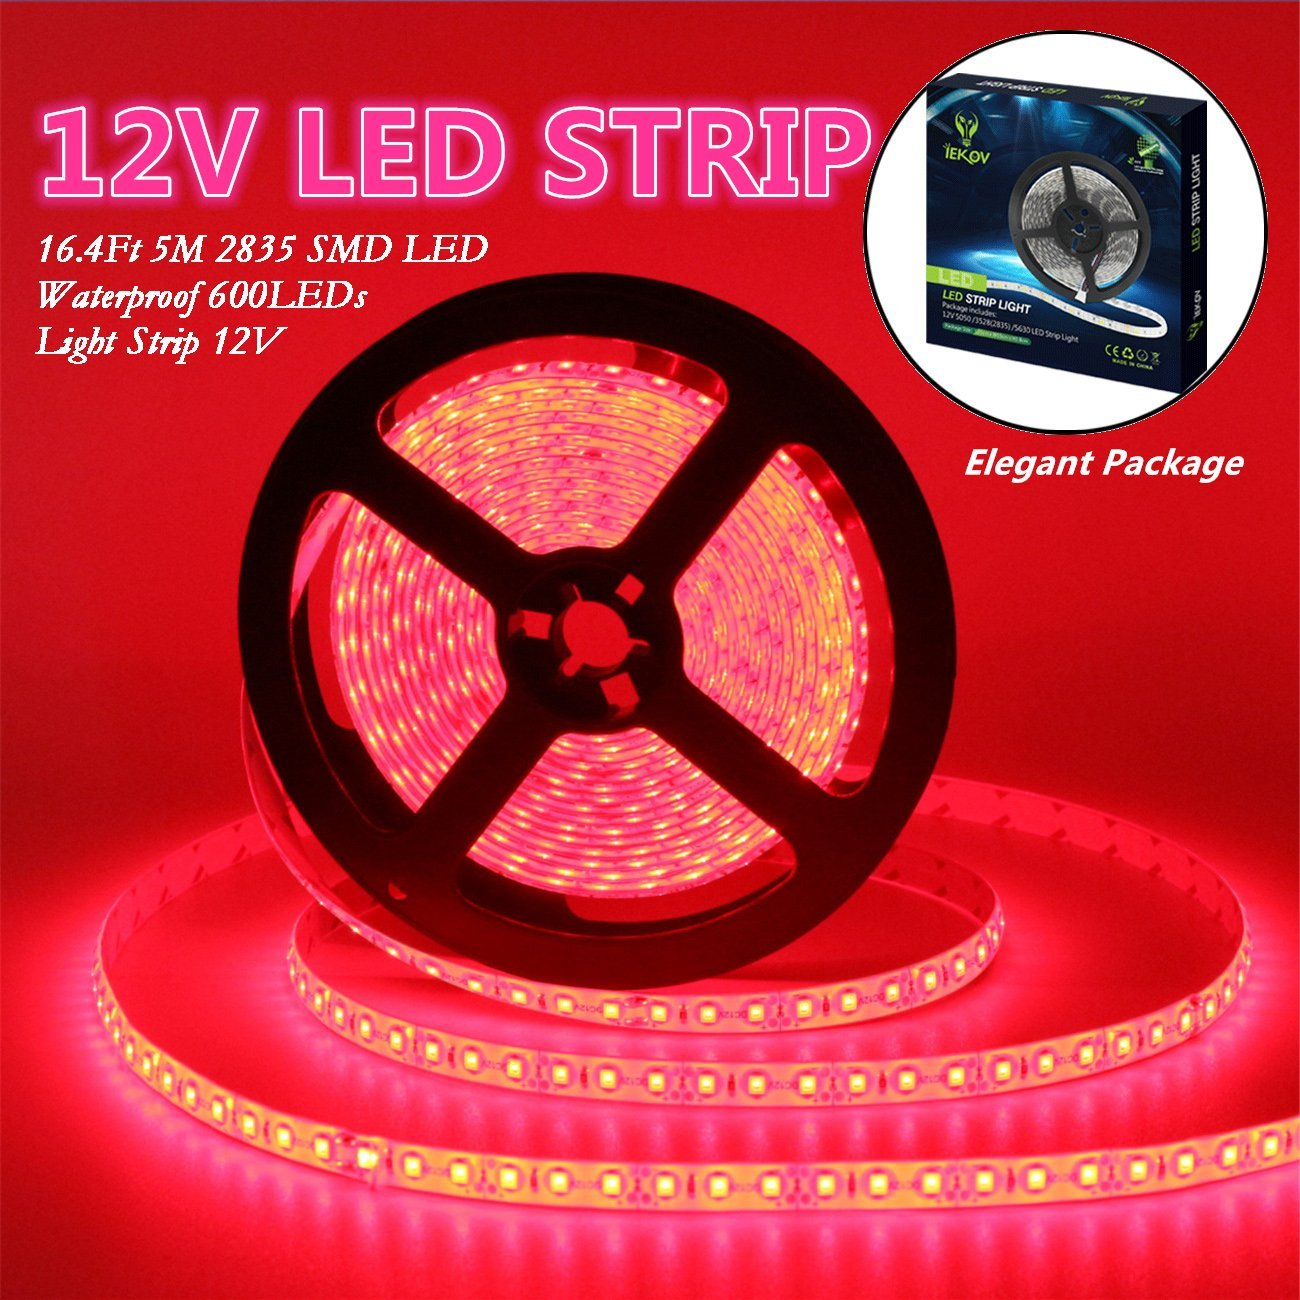 Led Strip Lights, IEKOV™ 2835 SMD 600LEDs Waterproof Flexible Xmas Decorative Lighting Strips, LED Tape, 5M 16.4Ft DC12V, 3 times brightness than SMD 3528 LED Light Strip (Red)